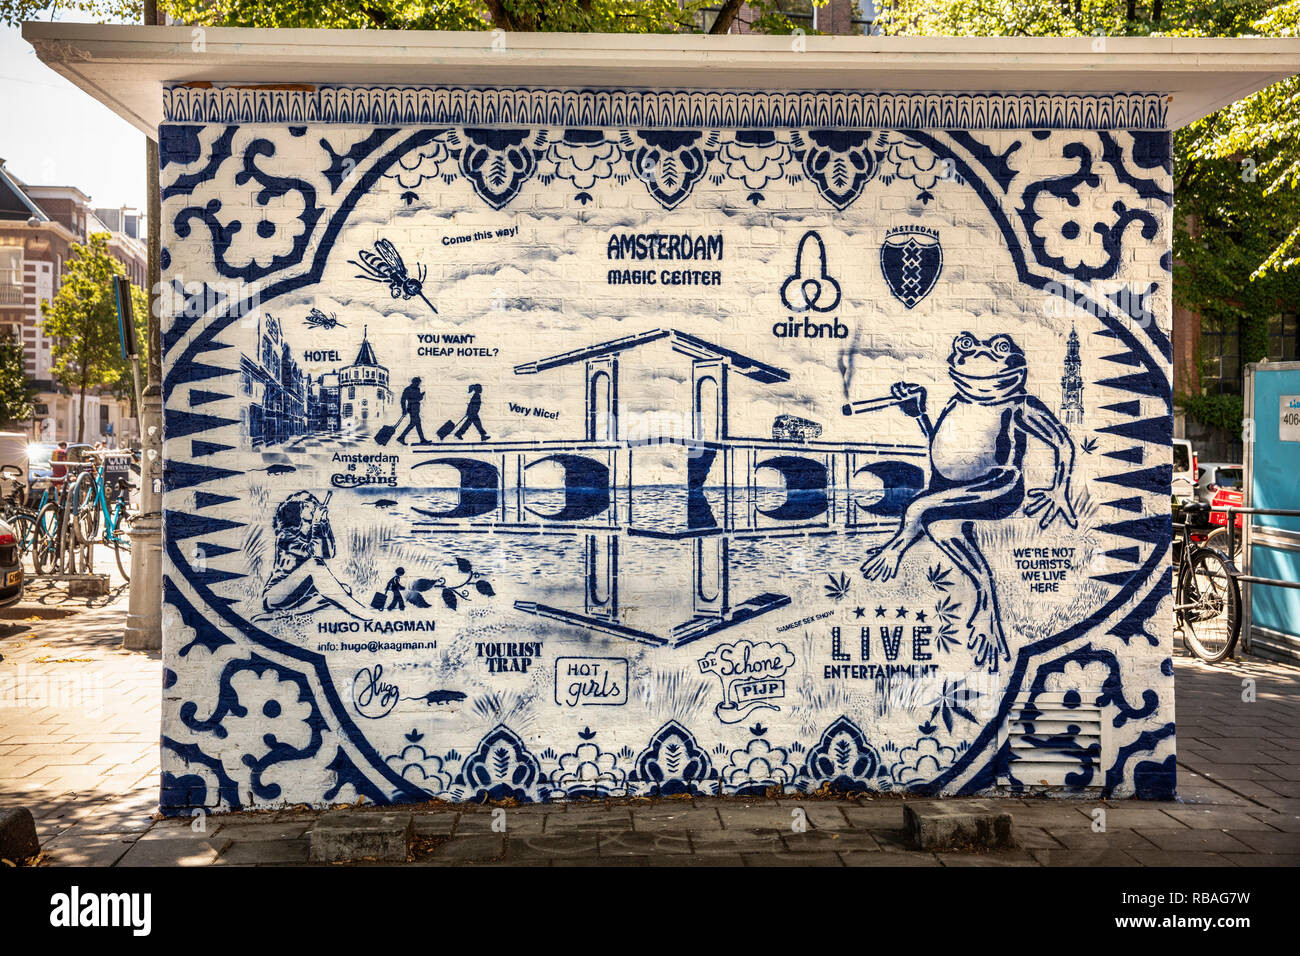 The Netherlands, Amsterdam, De Pijp district. Graffiti, street-art on walls in Hemonystreet by artist Hugo Kaagman, associated with Delft pottery or D - Stock Image